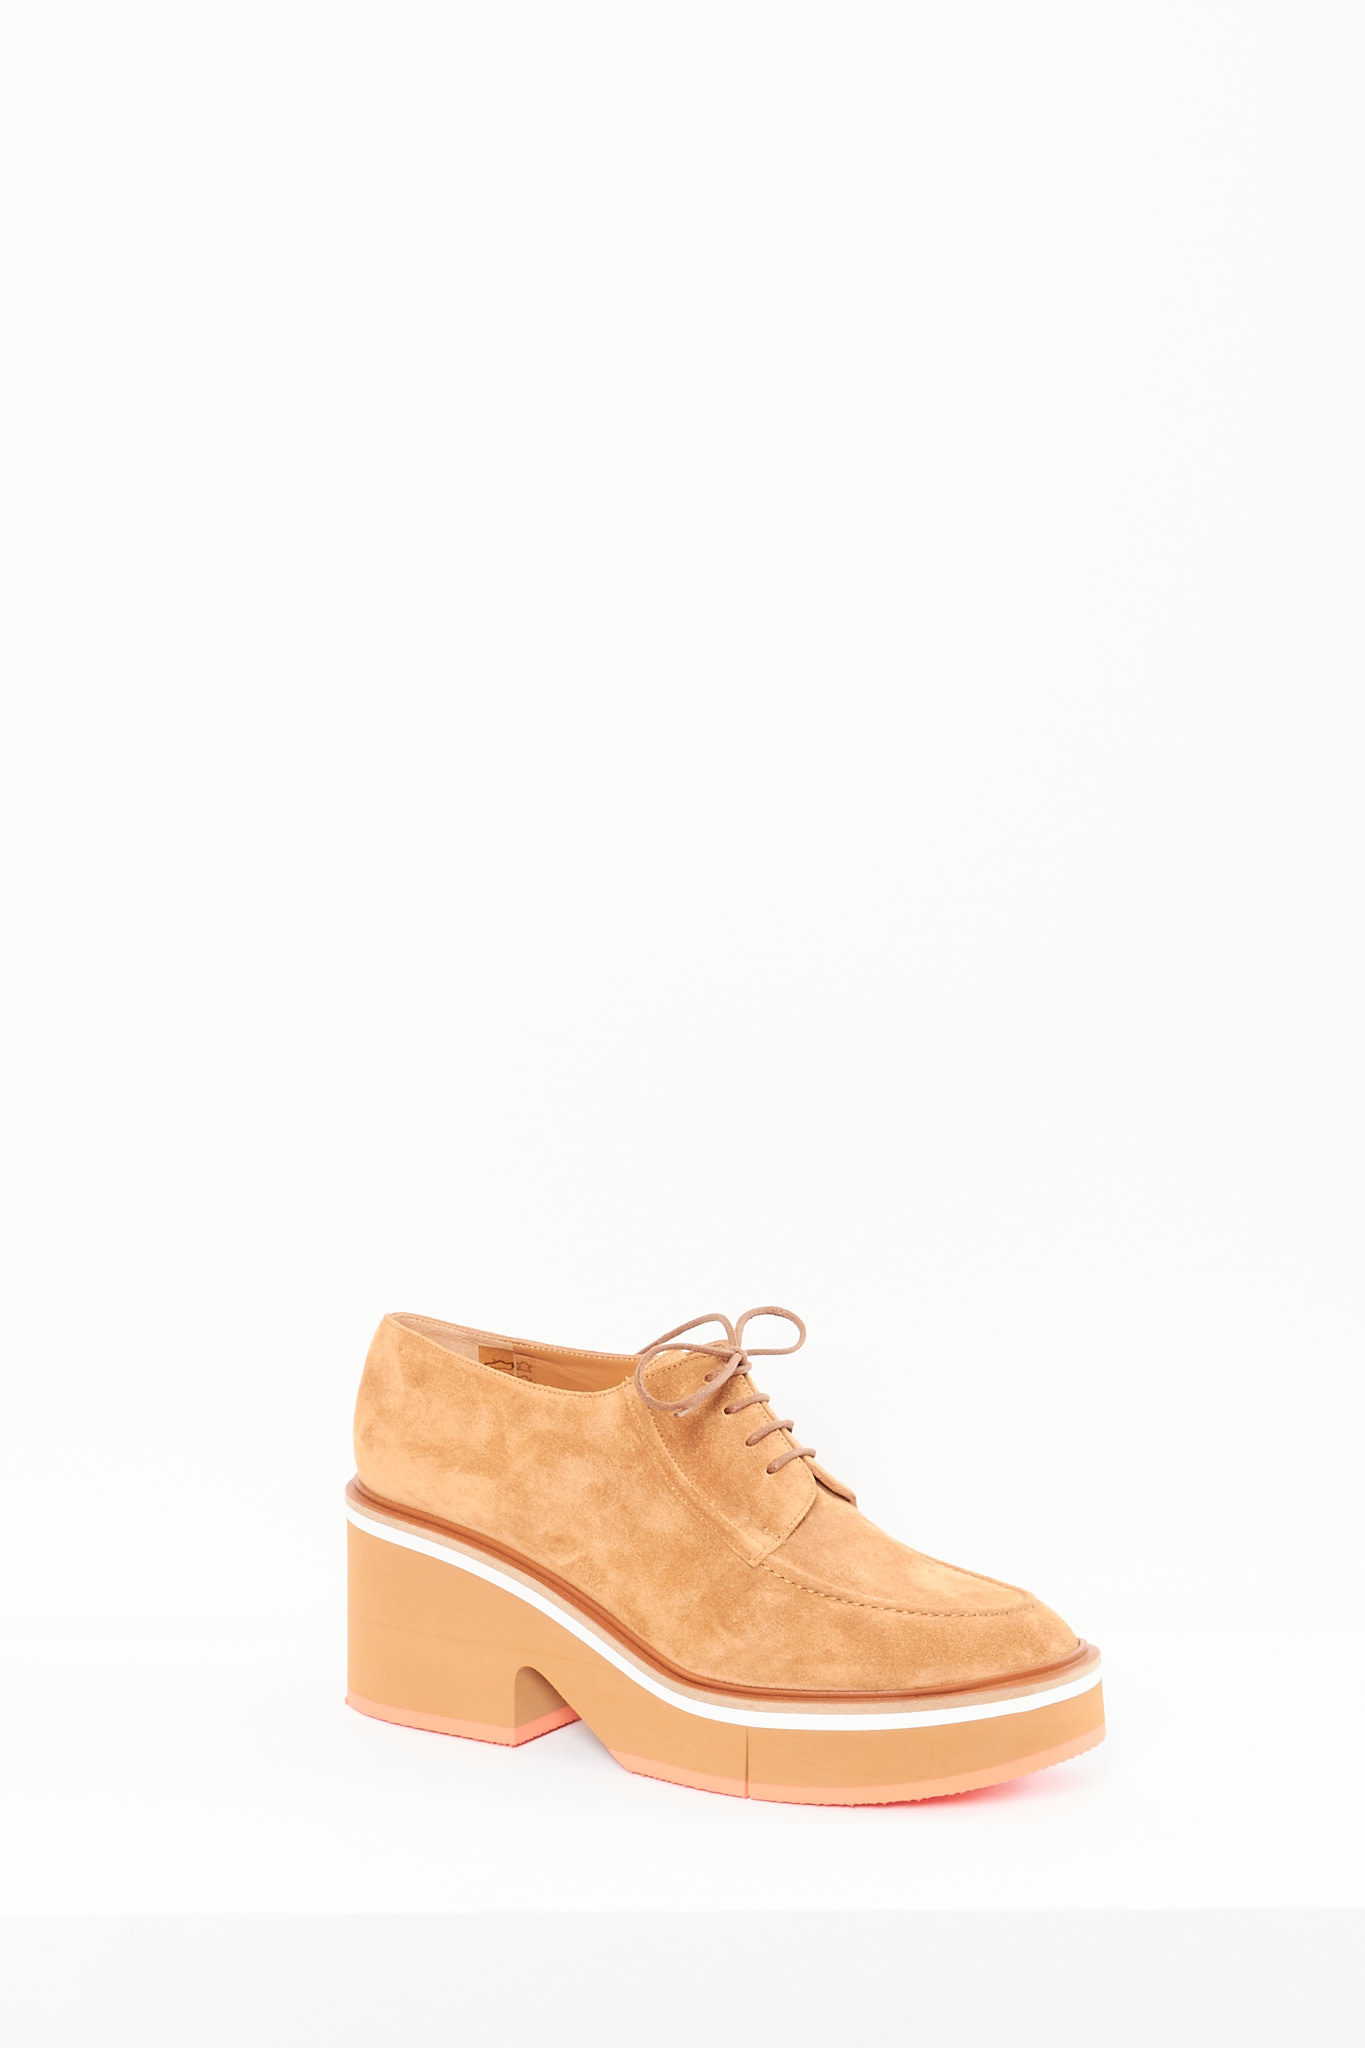 Clergerie Anja suede leather shoe's